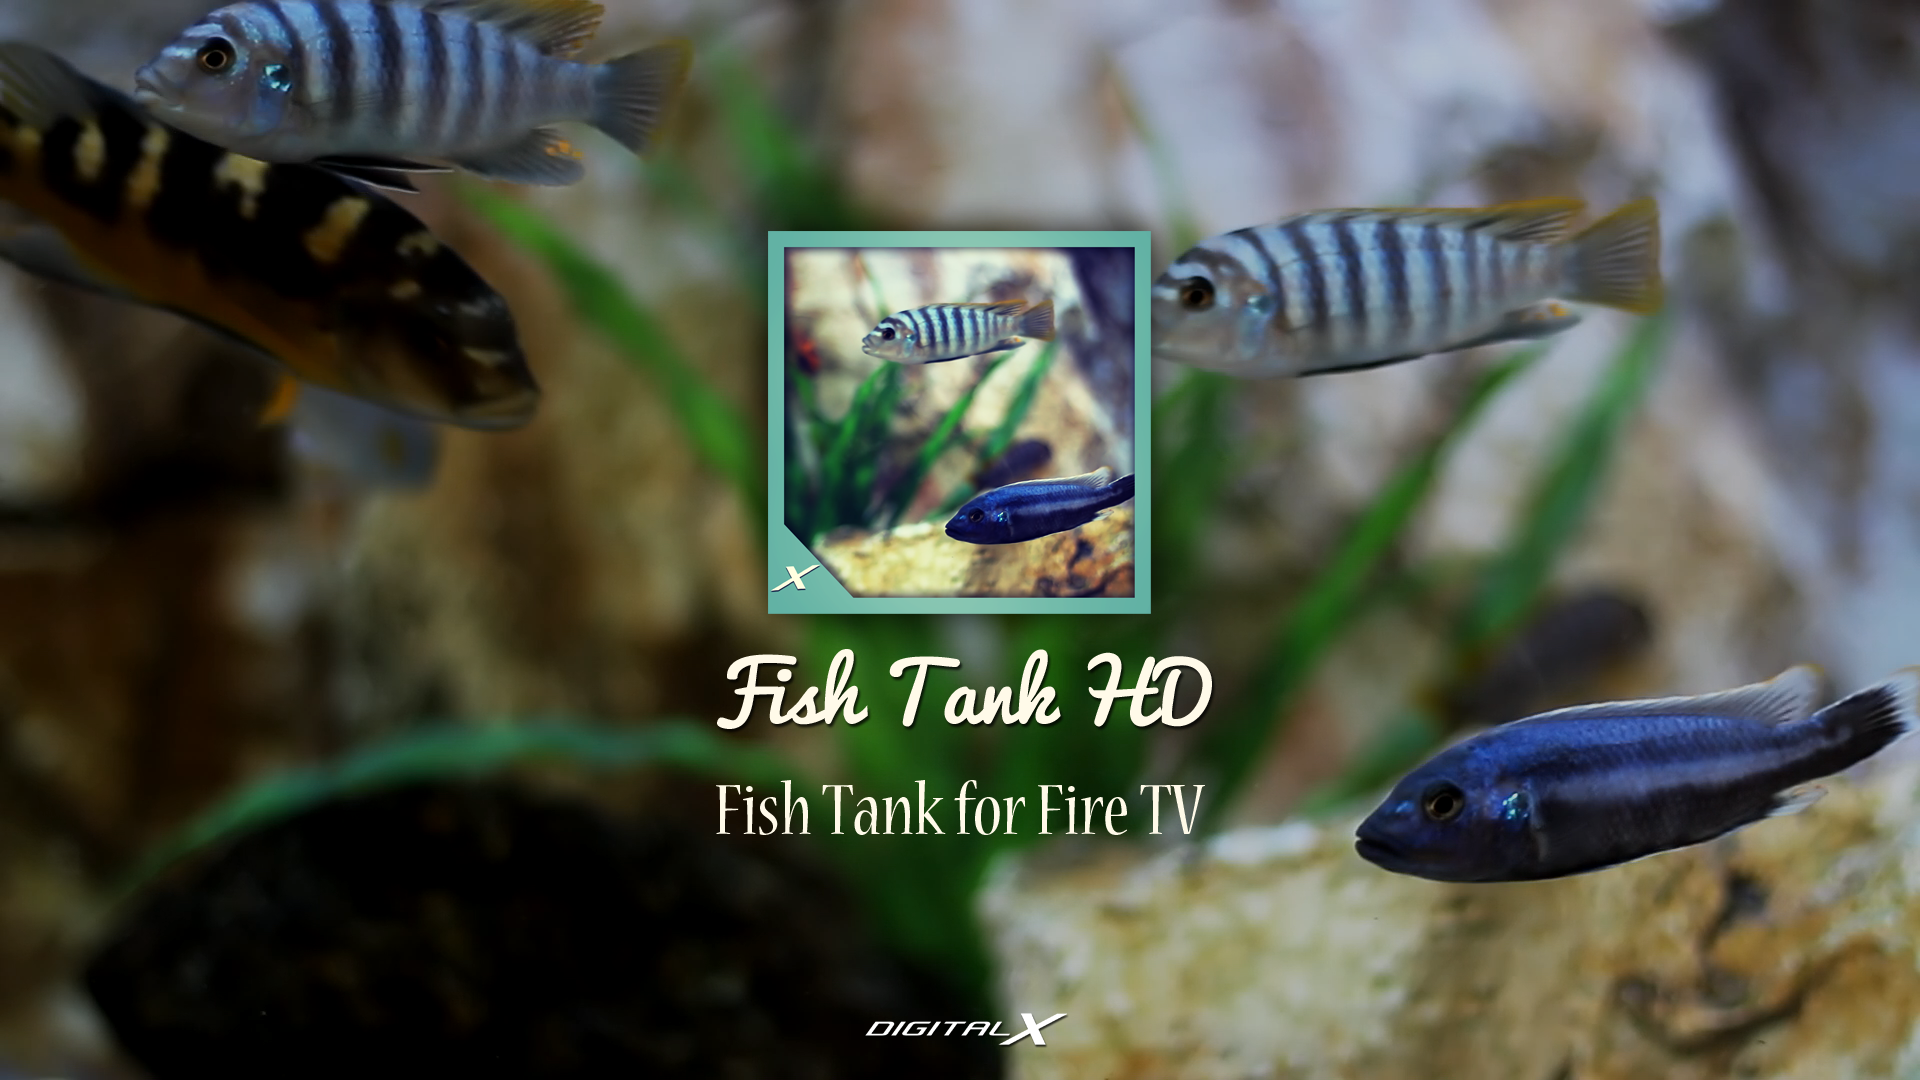 Fish tank hd fish tank for fire tv apps f r for Fish tank app